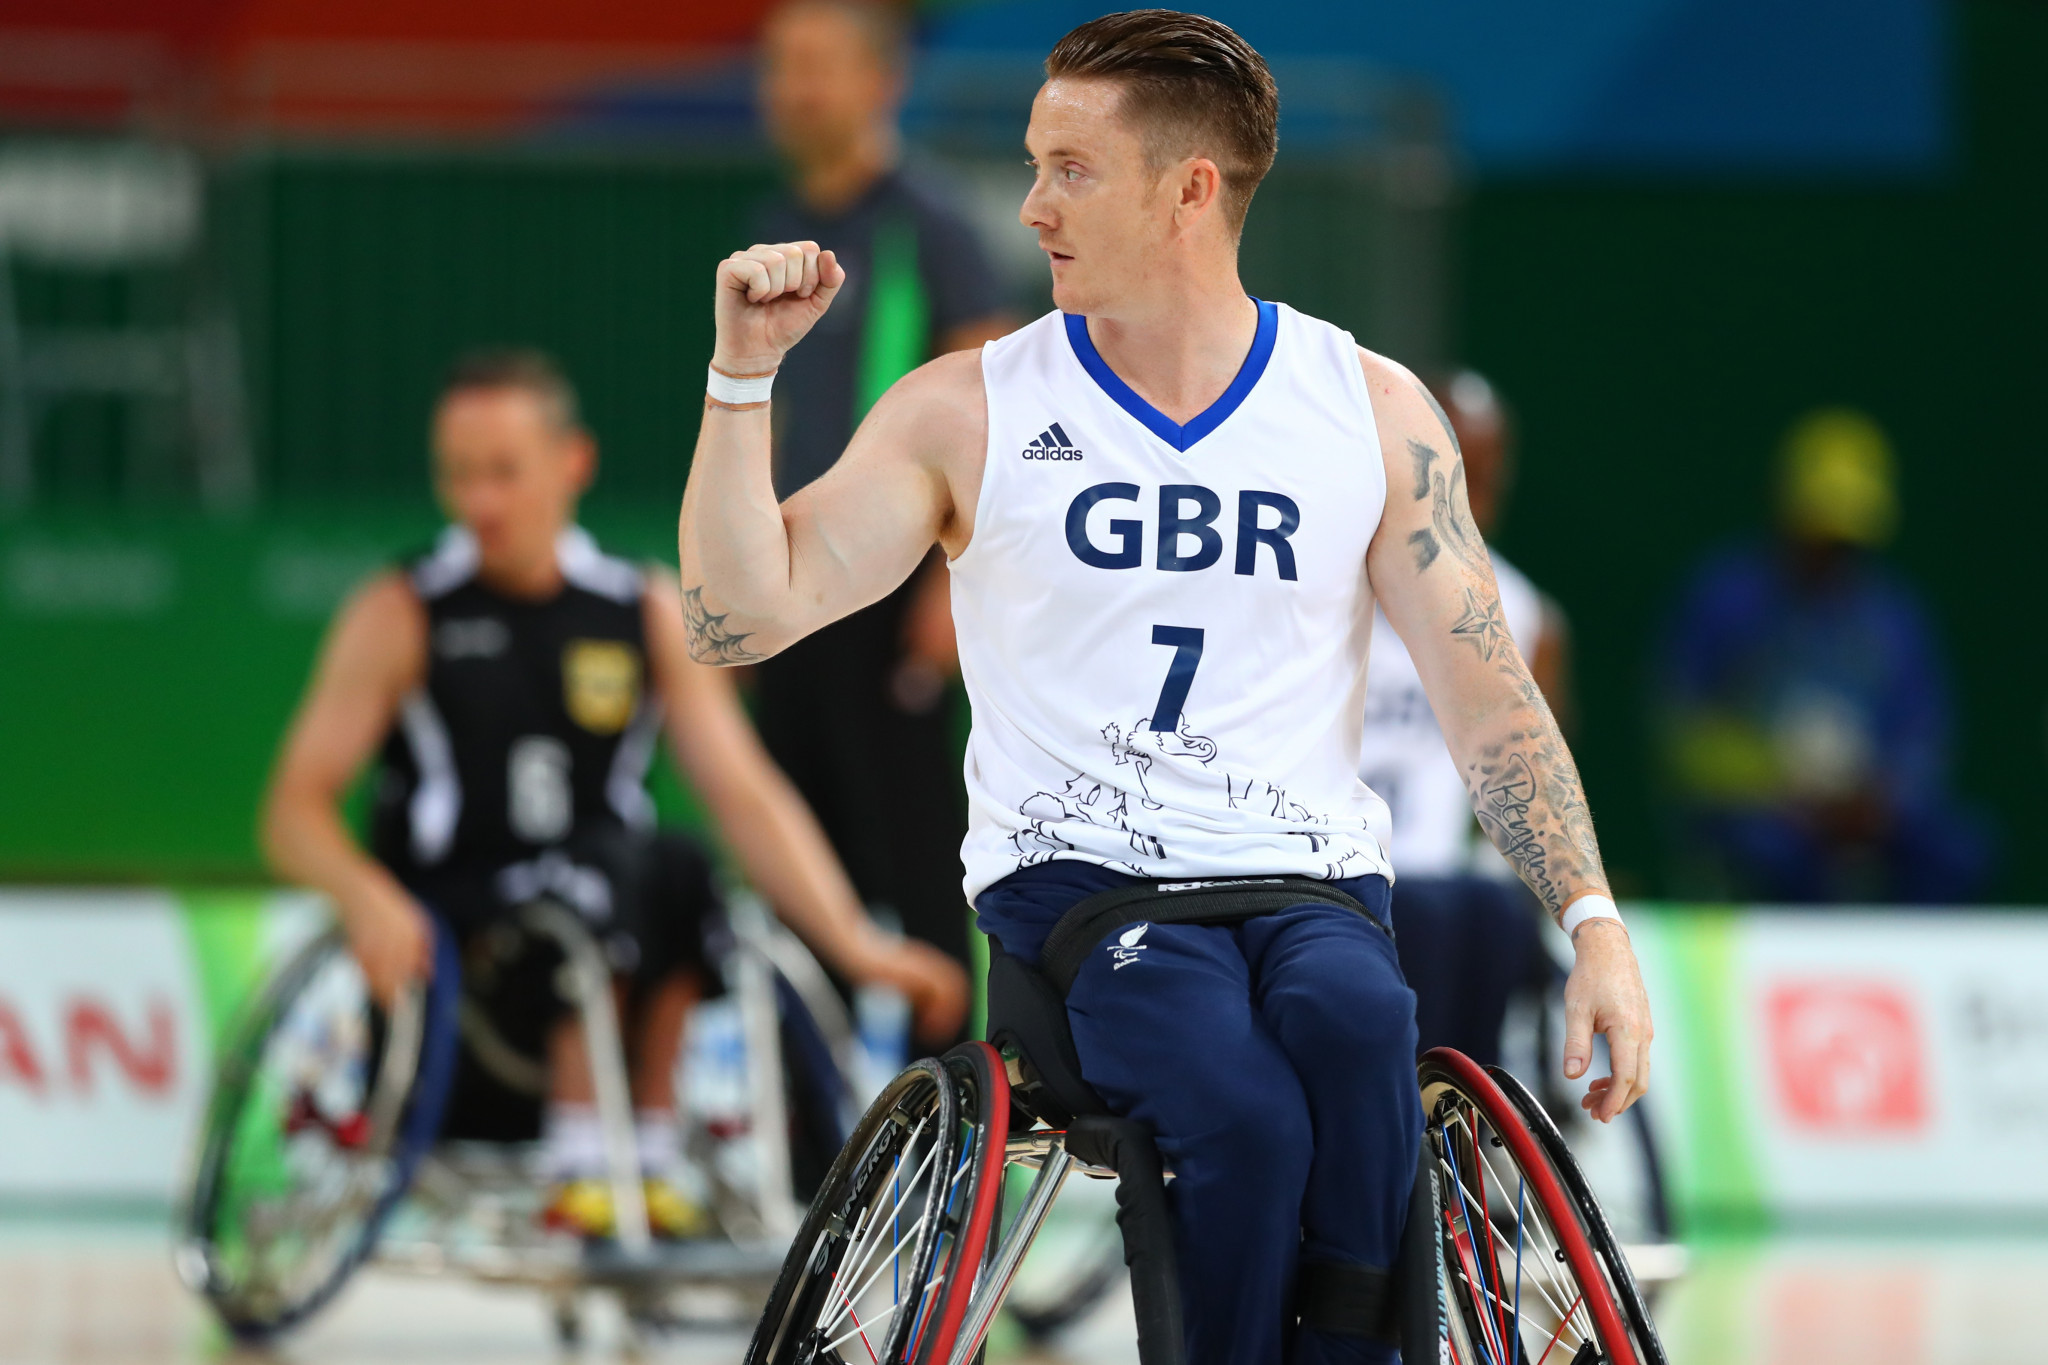 World champion Bywater replaces De Rooij on IWBF Athlete Steering Committee